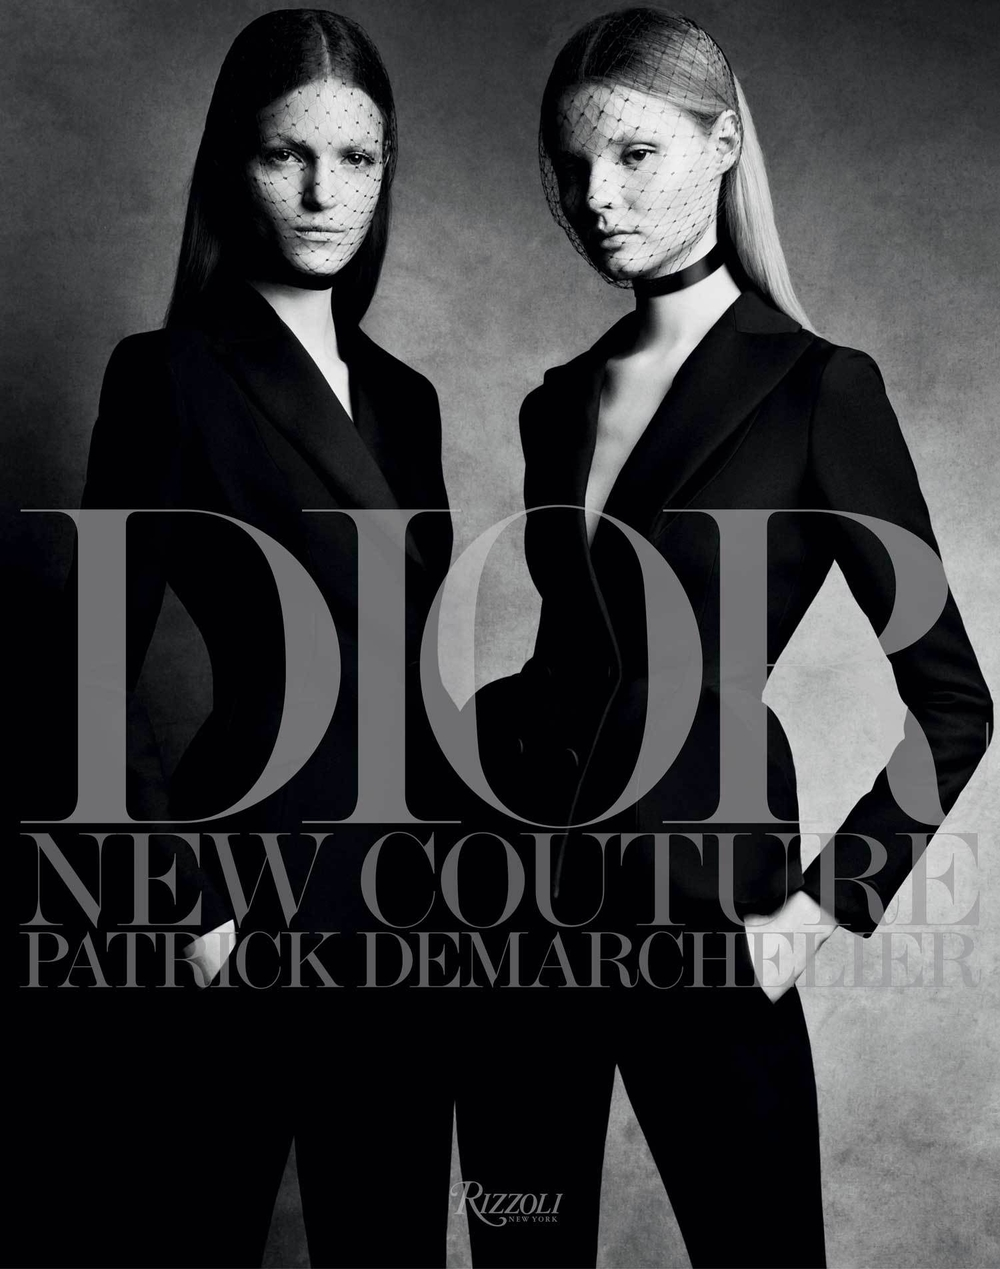 Patrick Demarchlier's DIOR: New Couture